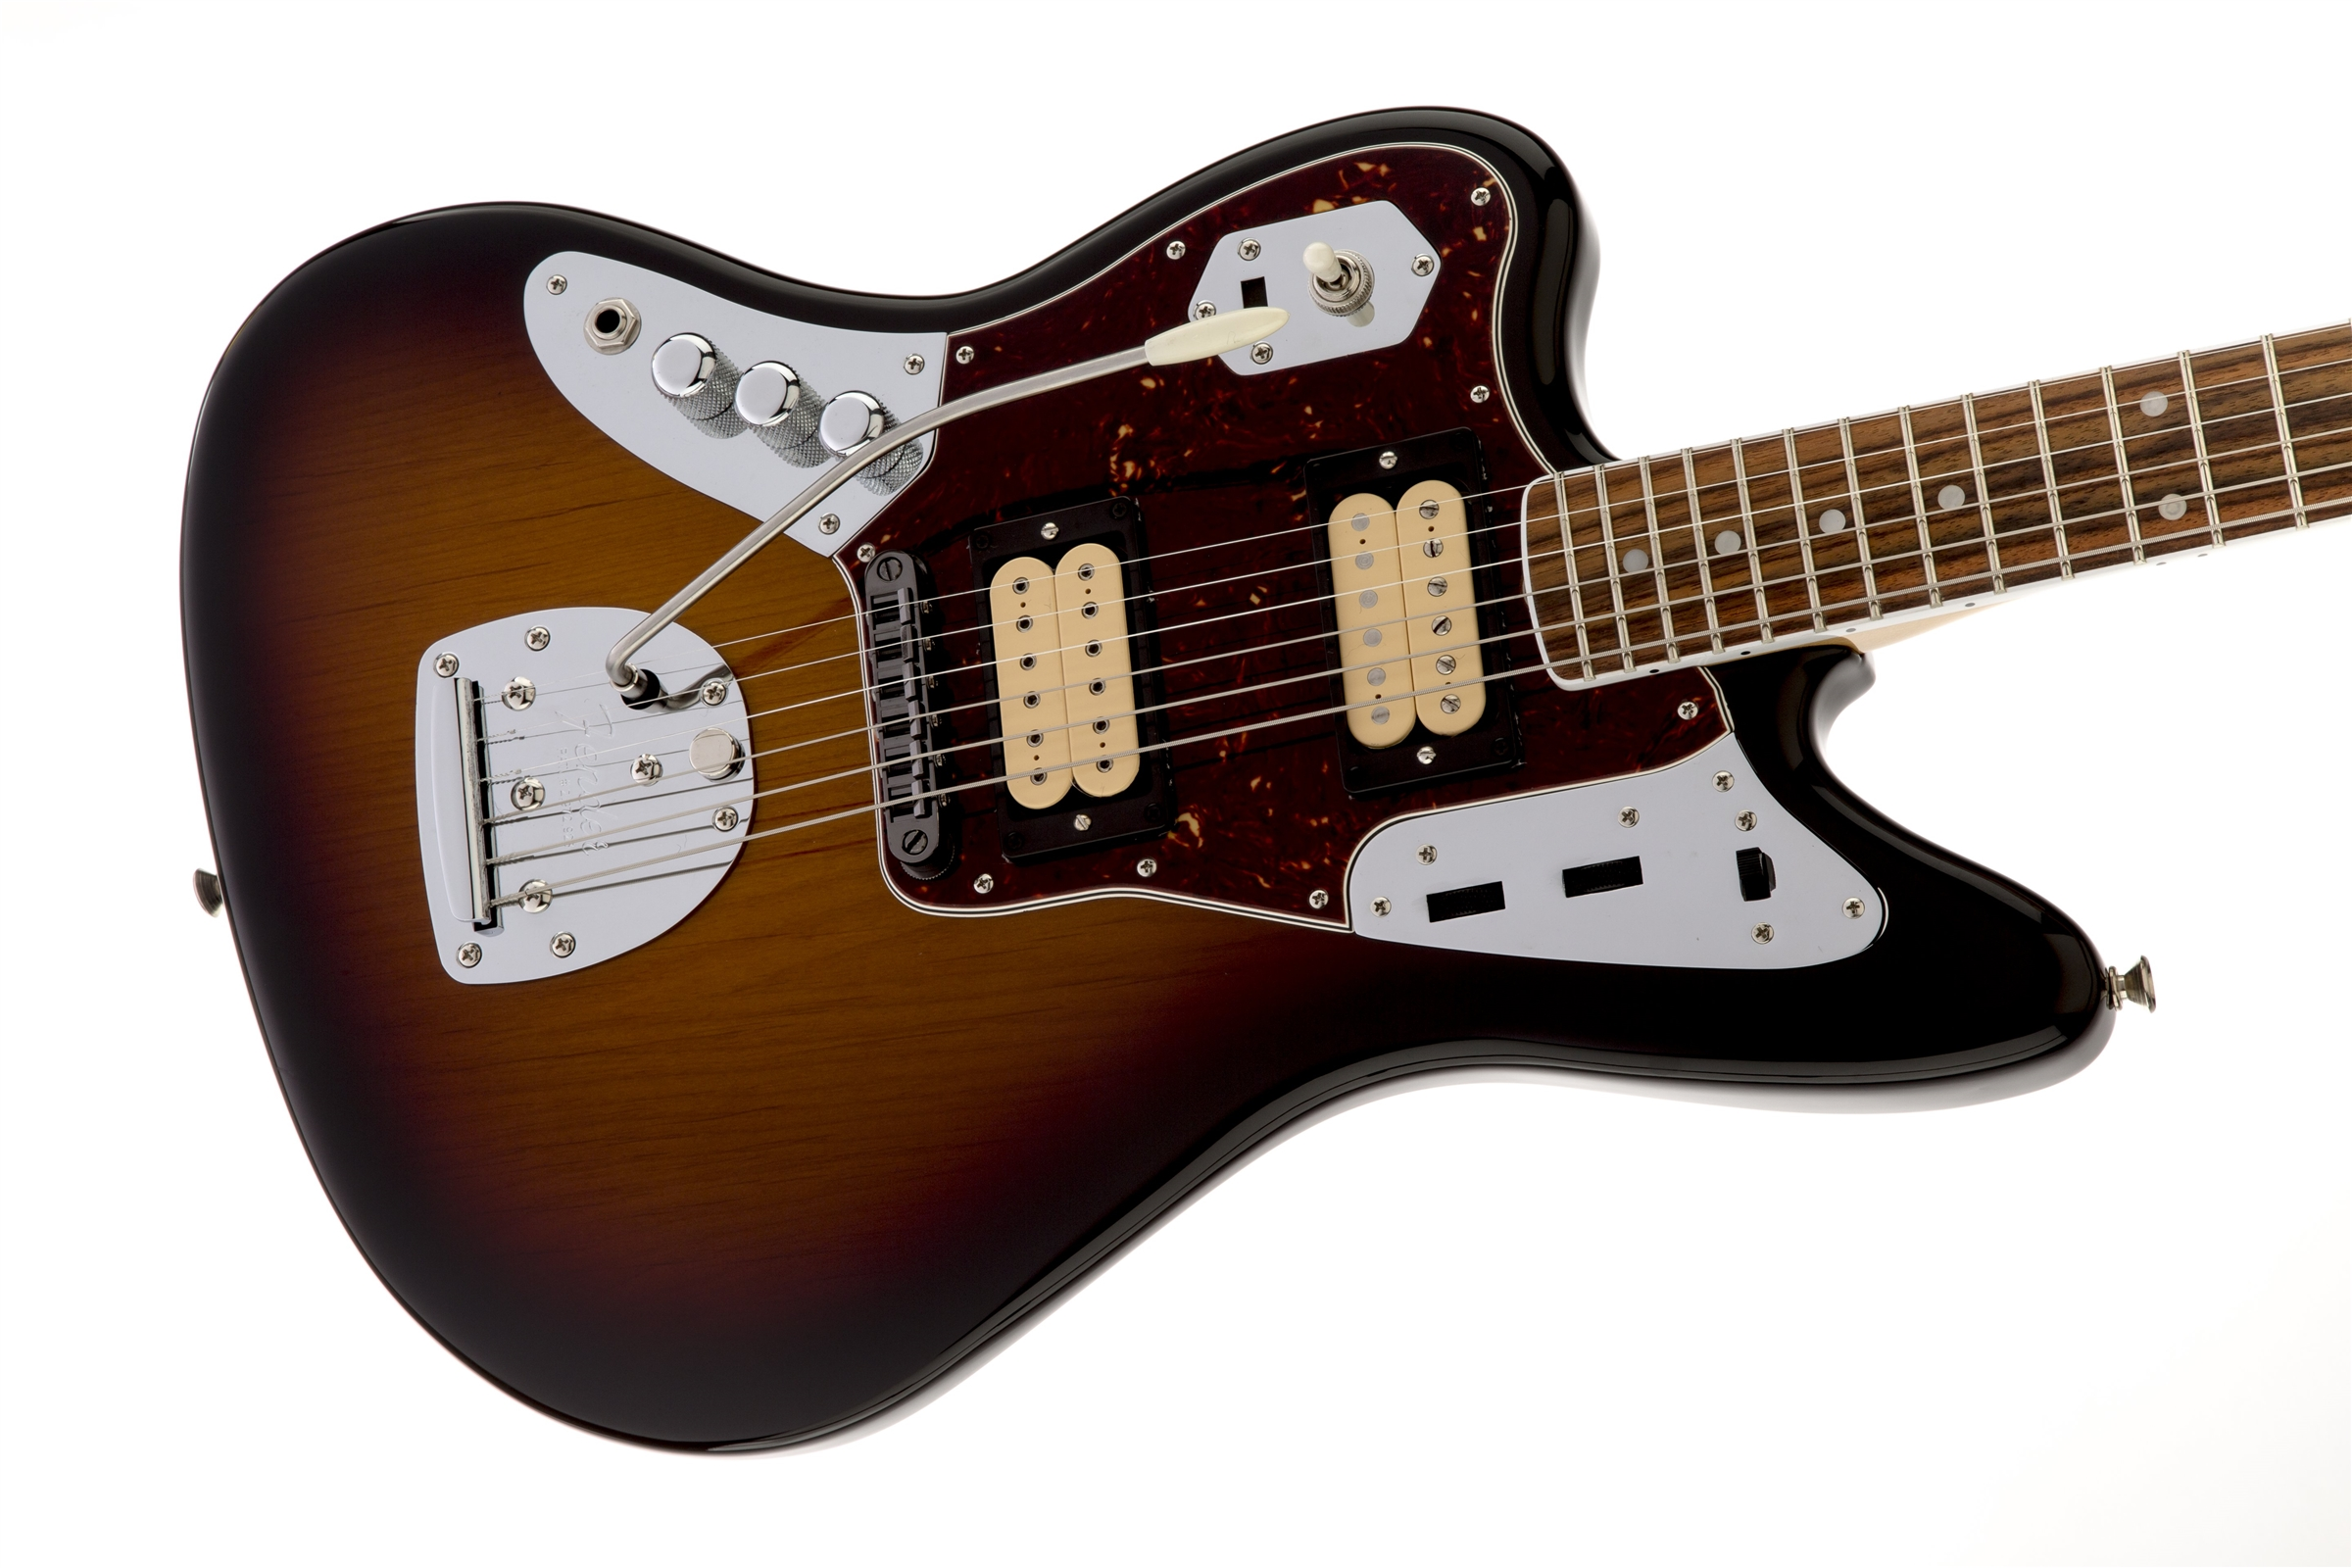 Fender Kurt Cobain Jaguar® Artist Series Left-Hand 3-Color Sunburst Rosewood Fingerboard Electric Guitar